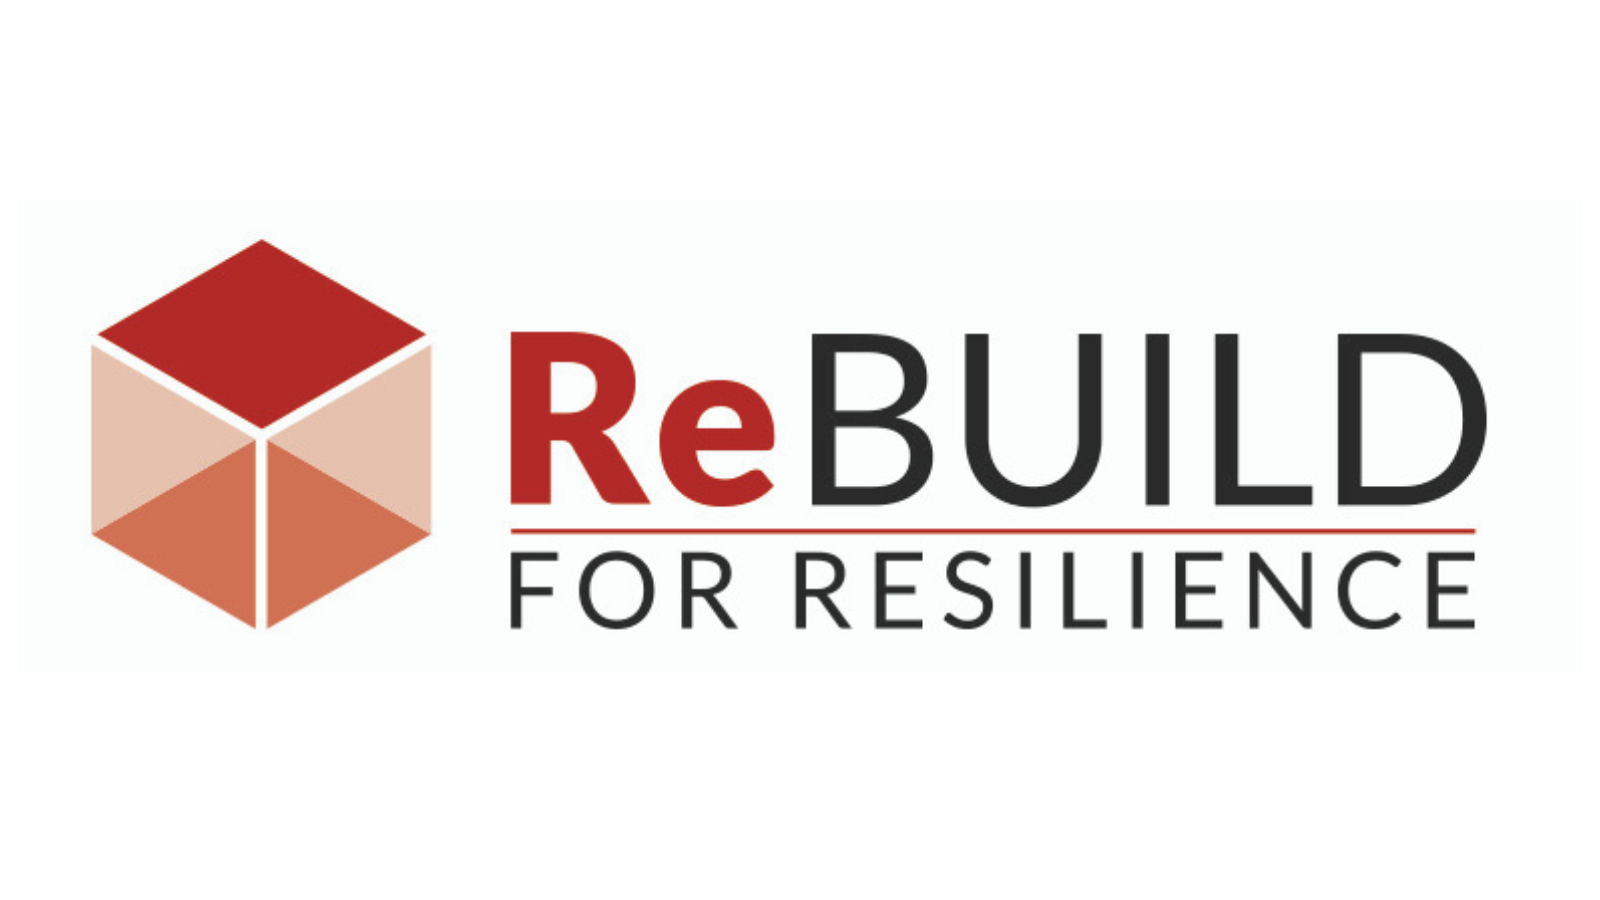 Managing communications for ReBUILD for Resilience